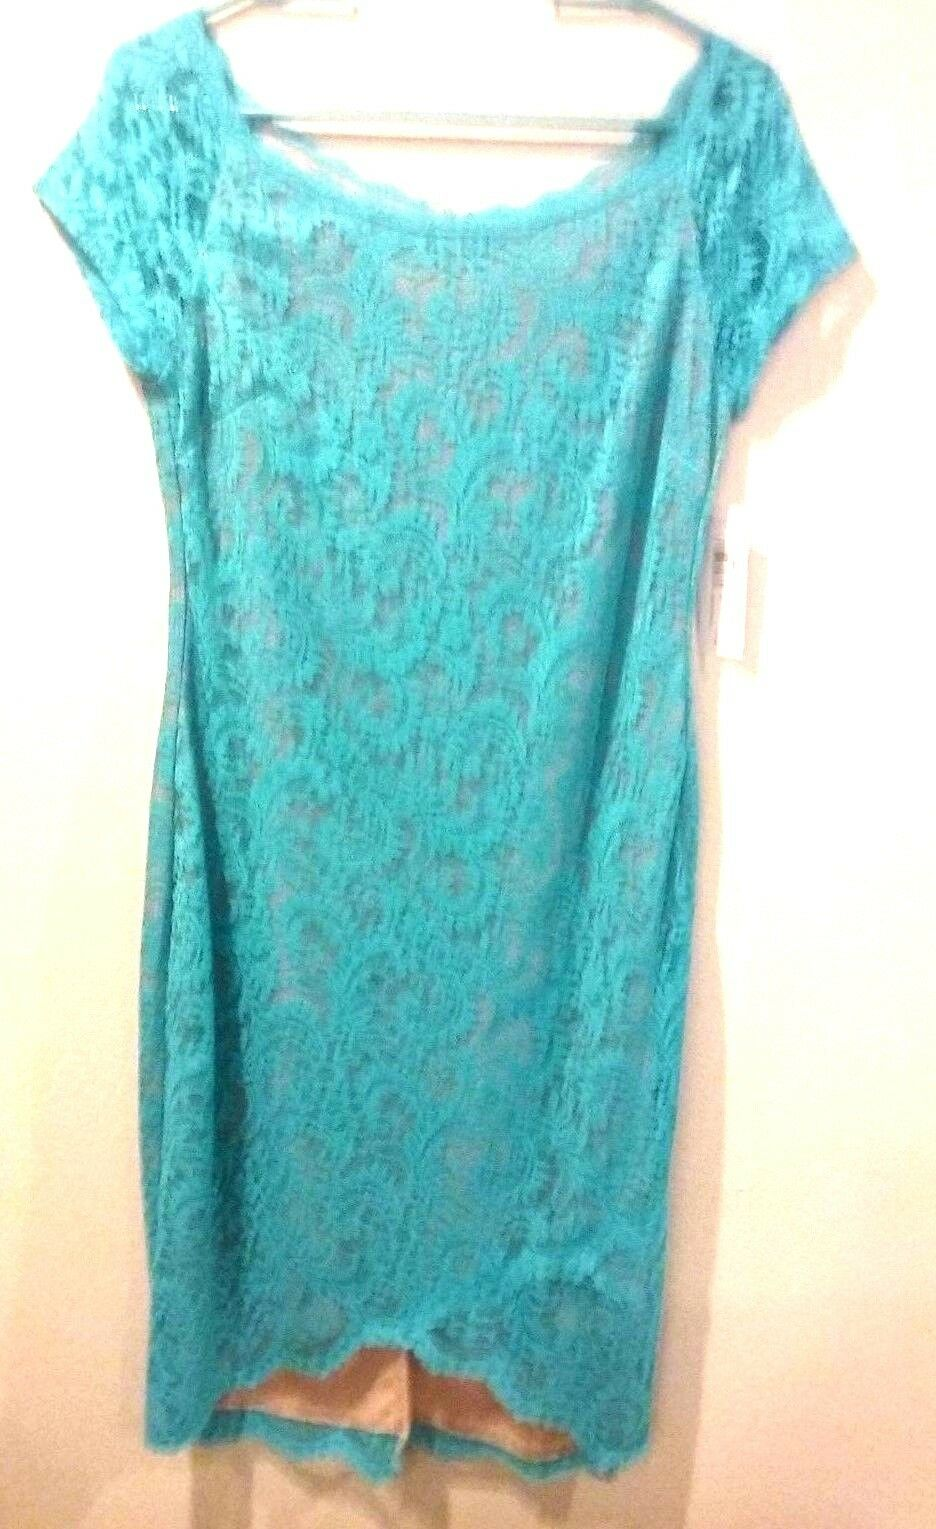 BISOU BISOU WOMANS DRESS LACE blueE JADE ON NUDE SZ 12 NEW TAGS SHORT SLEEVE